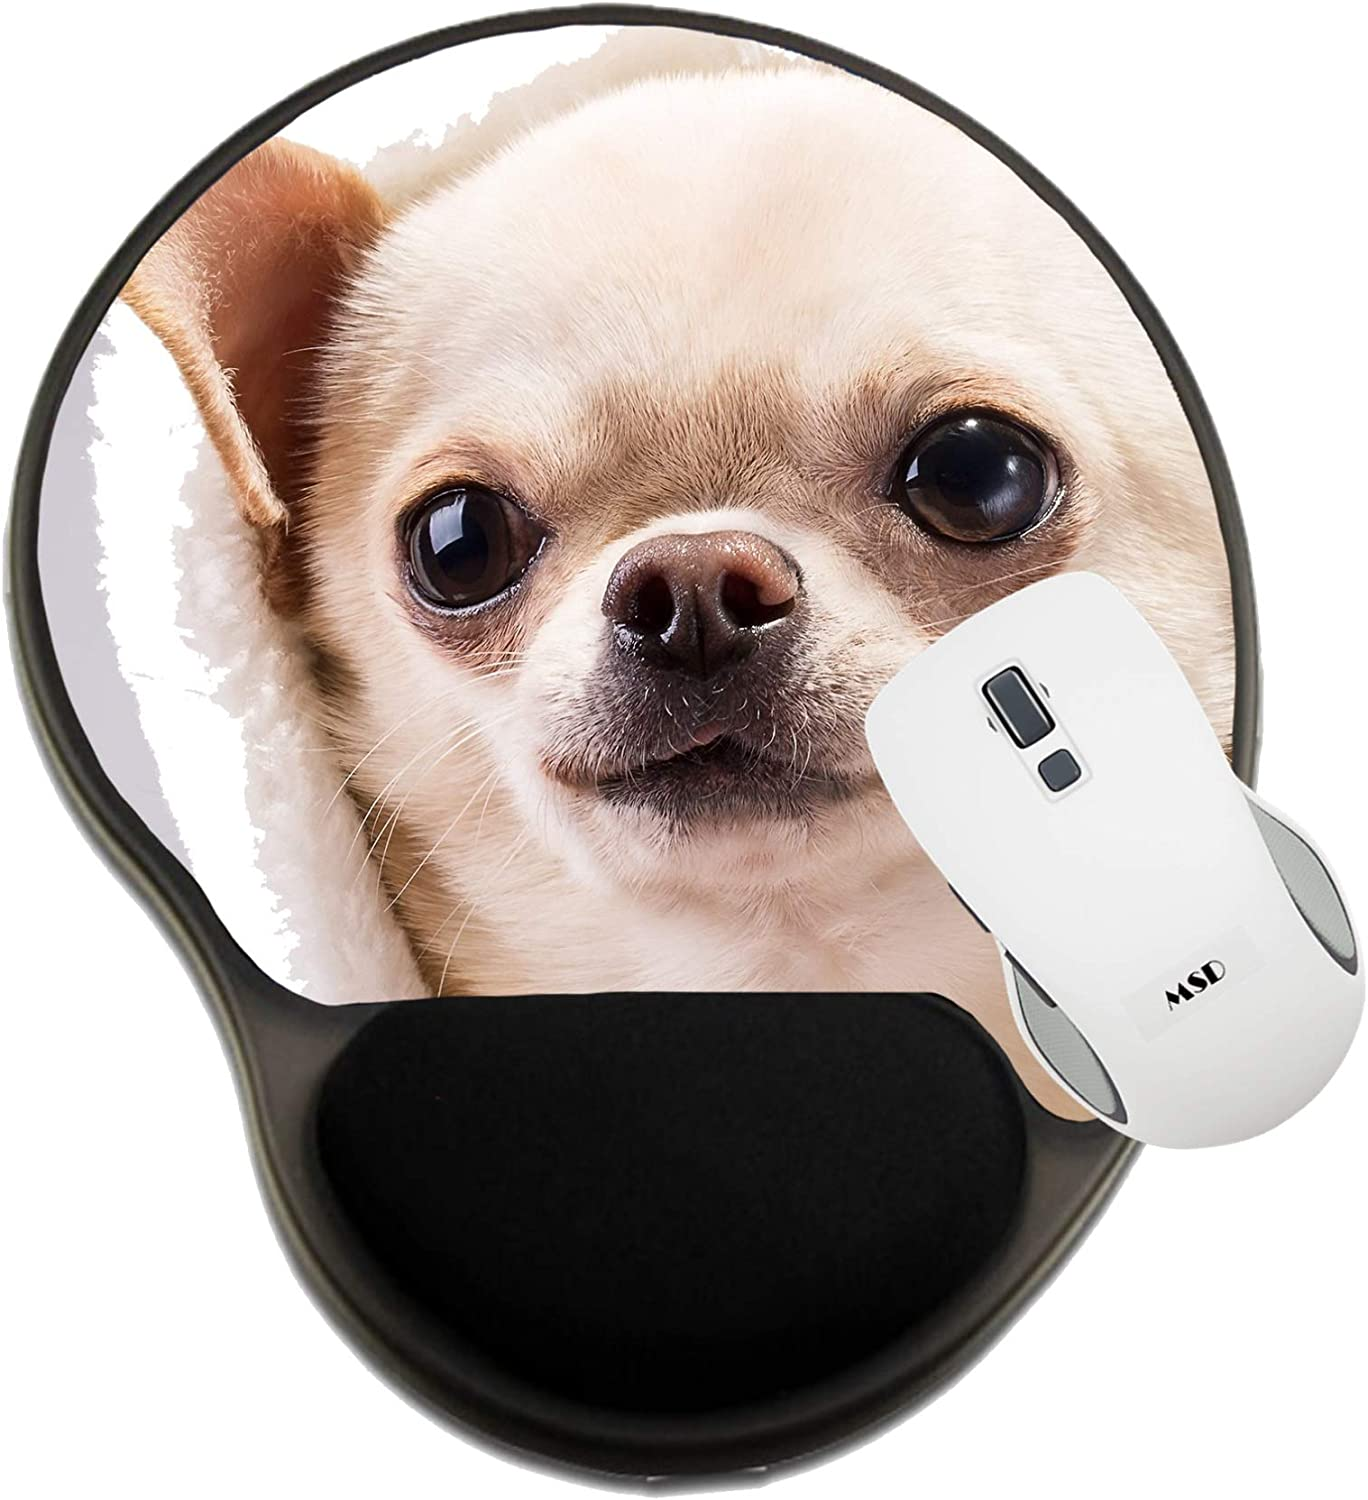 24455692 Happy Chihuahua Dog Close up Portrait Image ID Mat with Wrist Support MSD Mousepad Wrist Rest Protected Mouse Pads